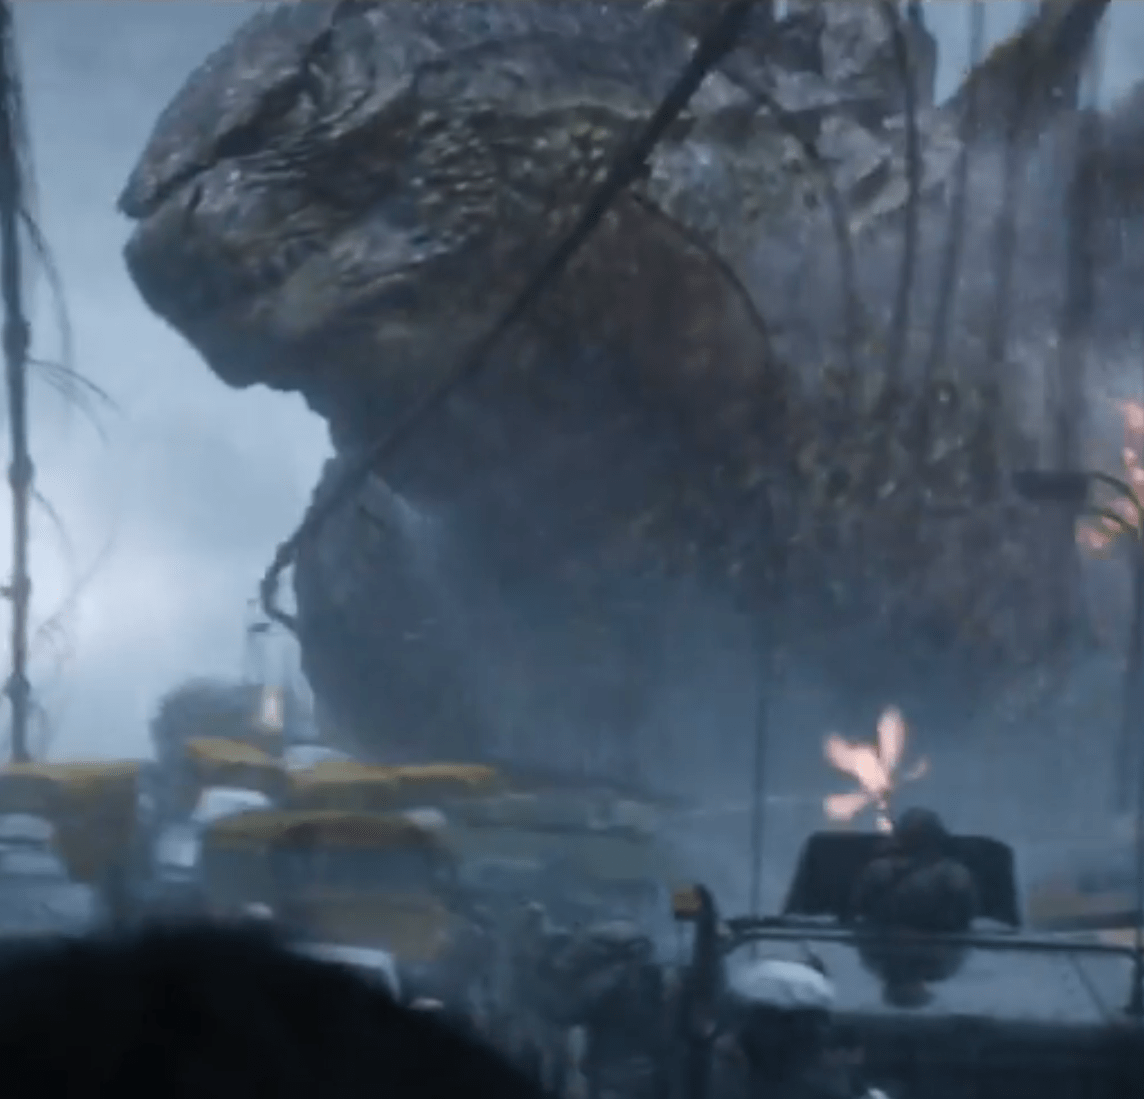 Godzilla 2014 International Trailer 2 Let Them Fight